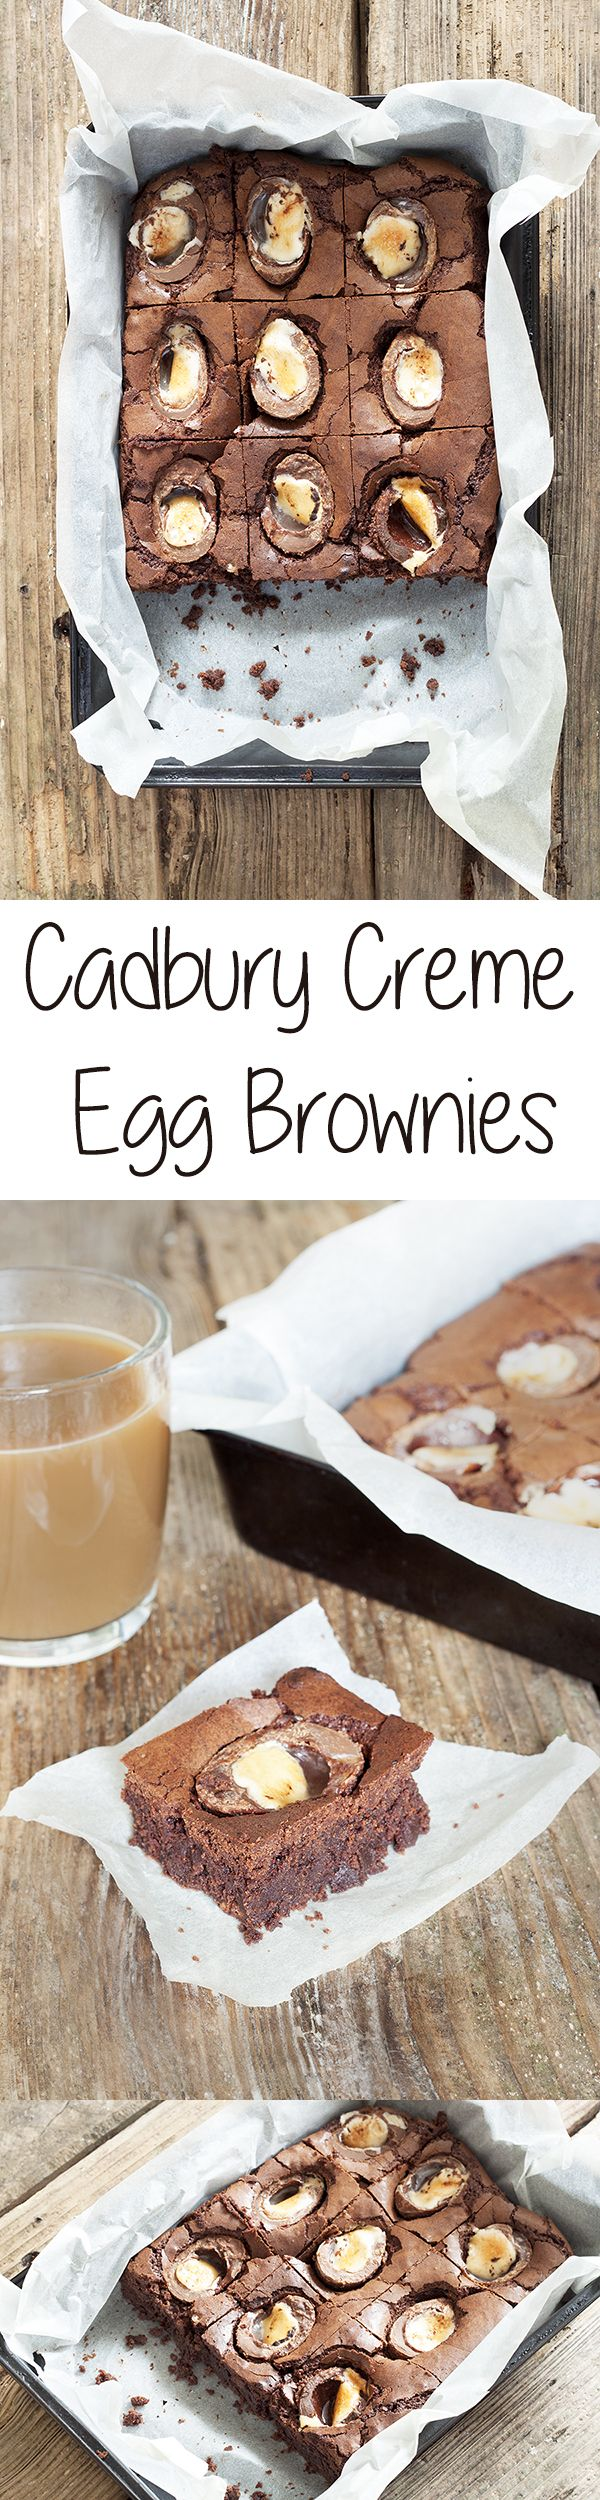 Cadbury Creme Egg Brownies Scrumptious